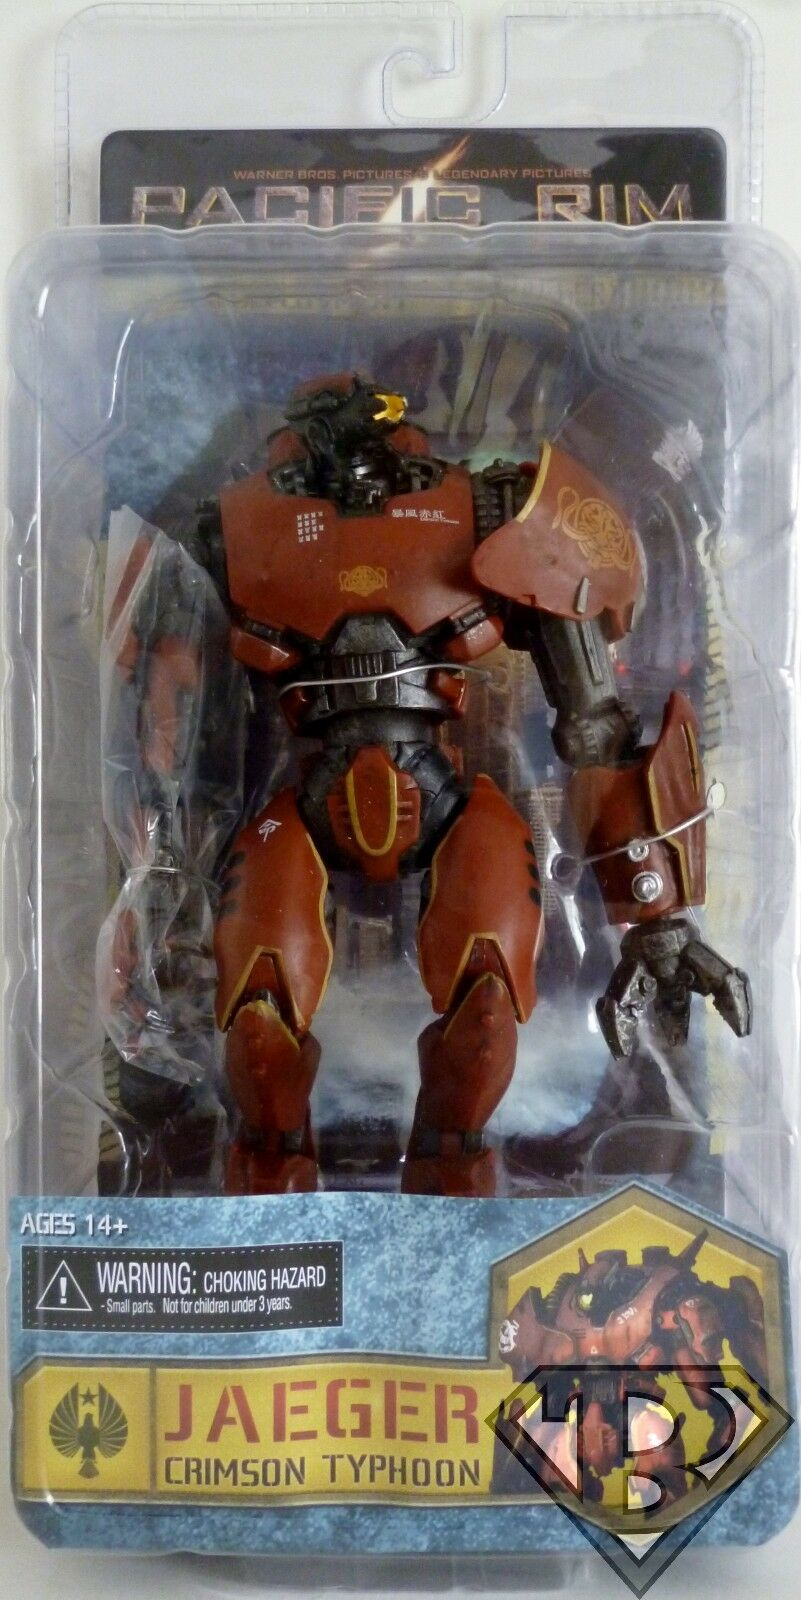 JAEGER CRIMSON TYPHOON 2nd Deployment Pacific Rim 7  Variant Figure Neca 2014